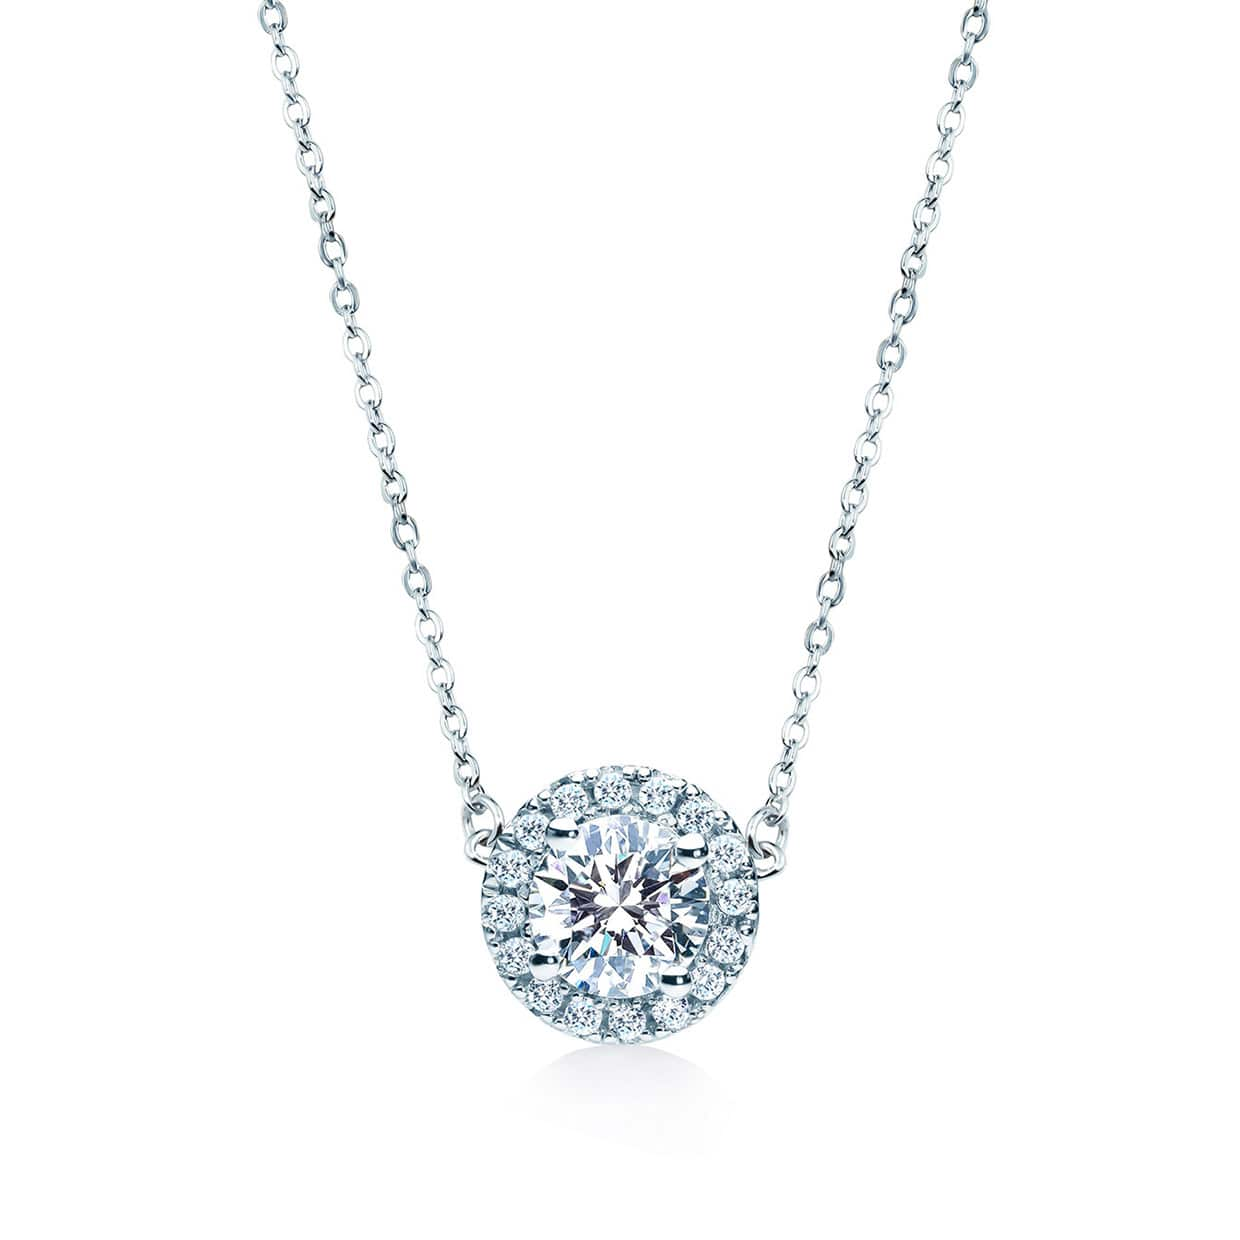 Oxford Silver Round Cut Halo Necklace - Abelstedt